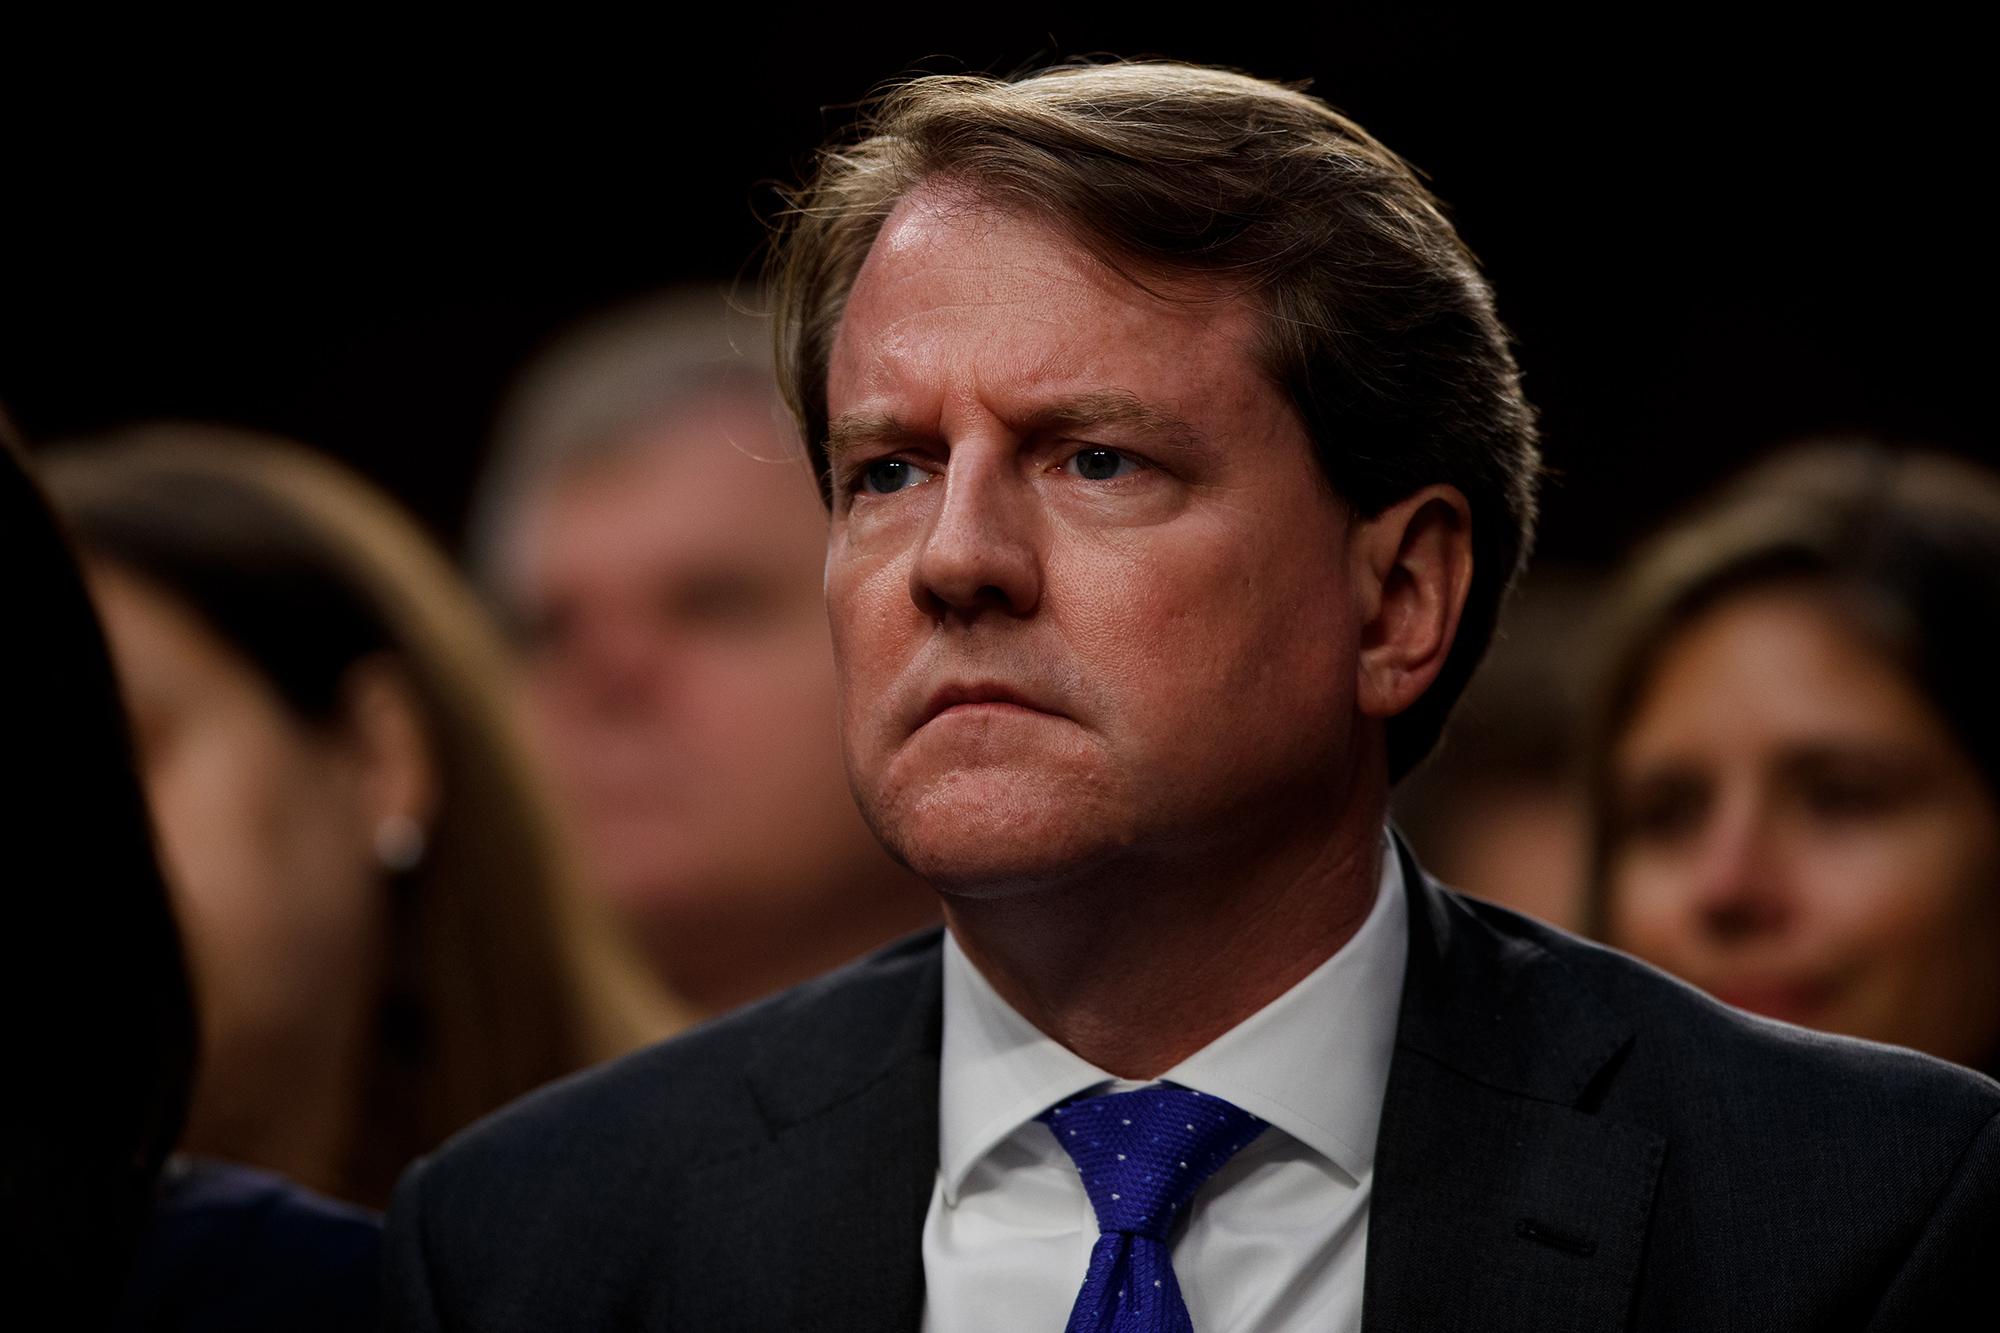 Former White House counsel Don McGahn attends the confirmation hearing for Supreme Court Justice Brett Kavanaugh on Sept. 4, 2018.